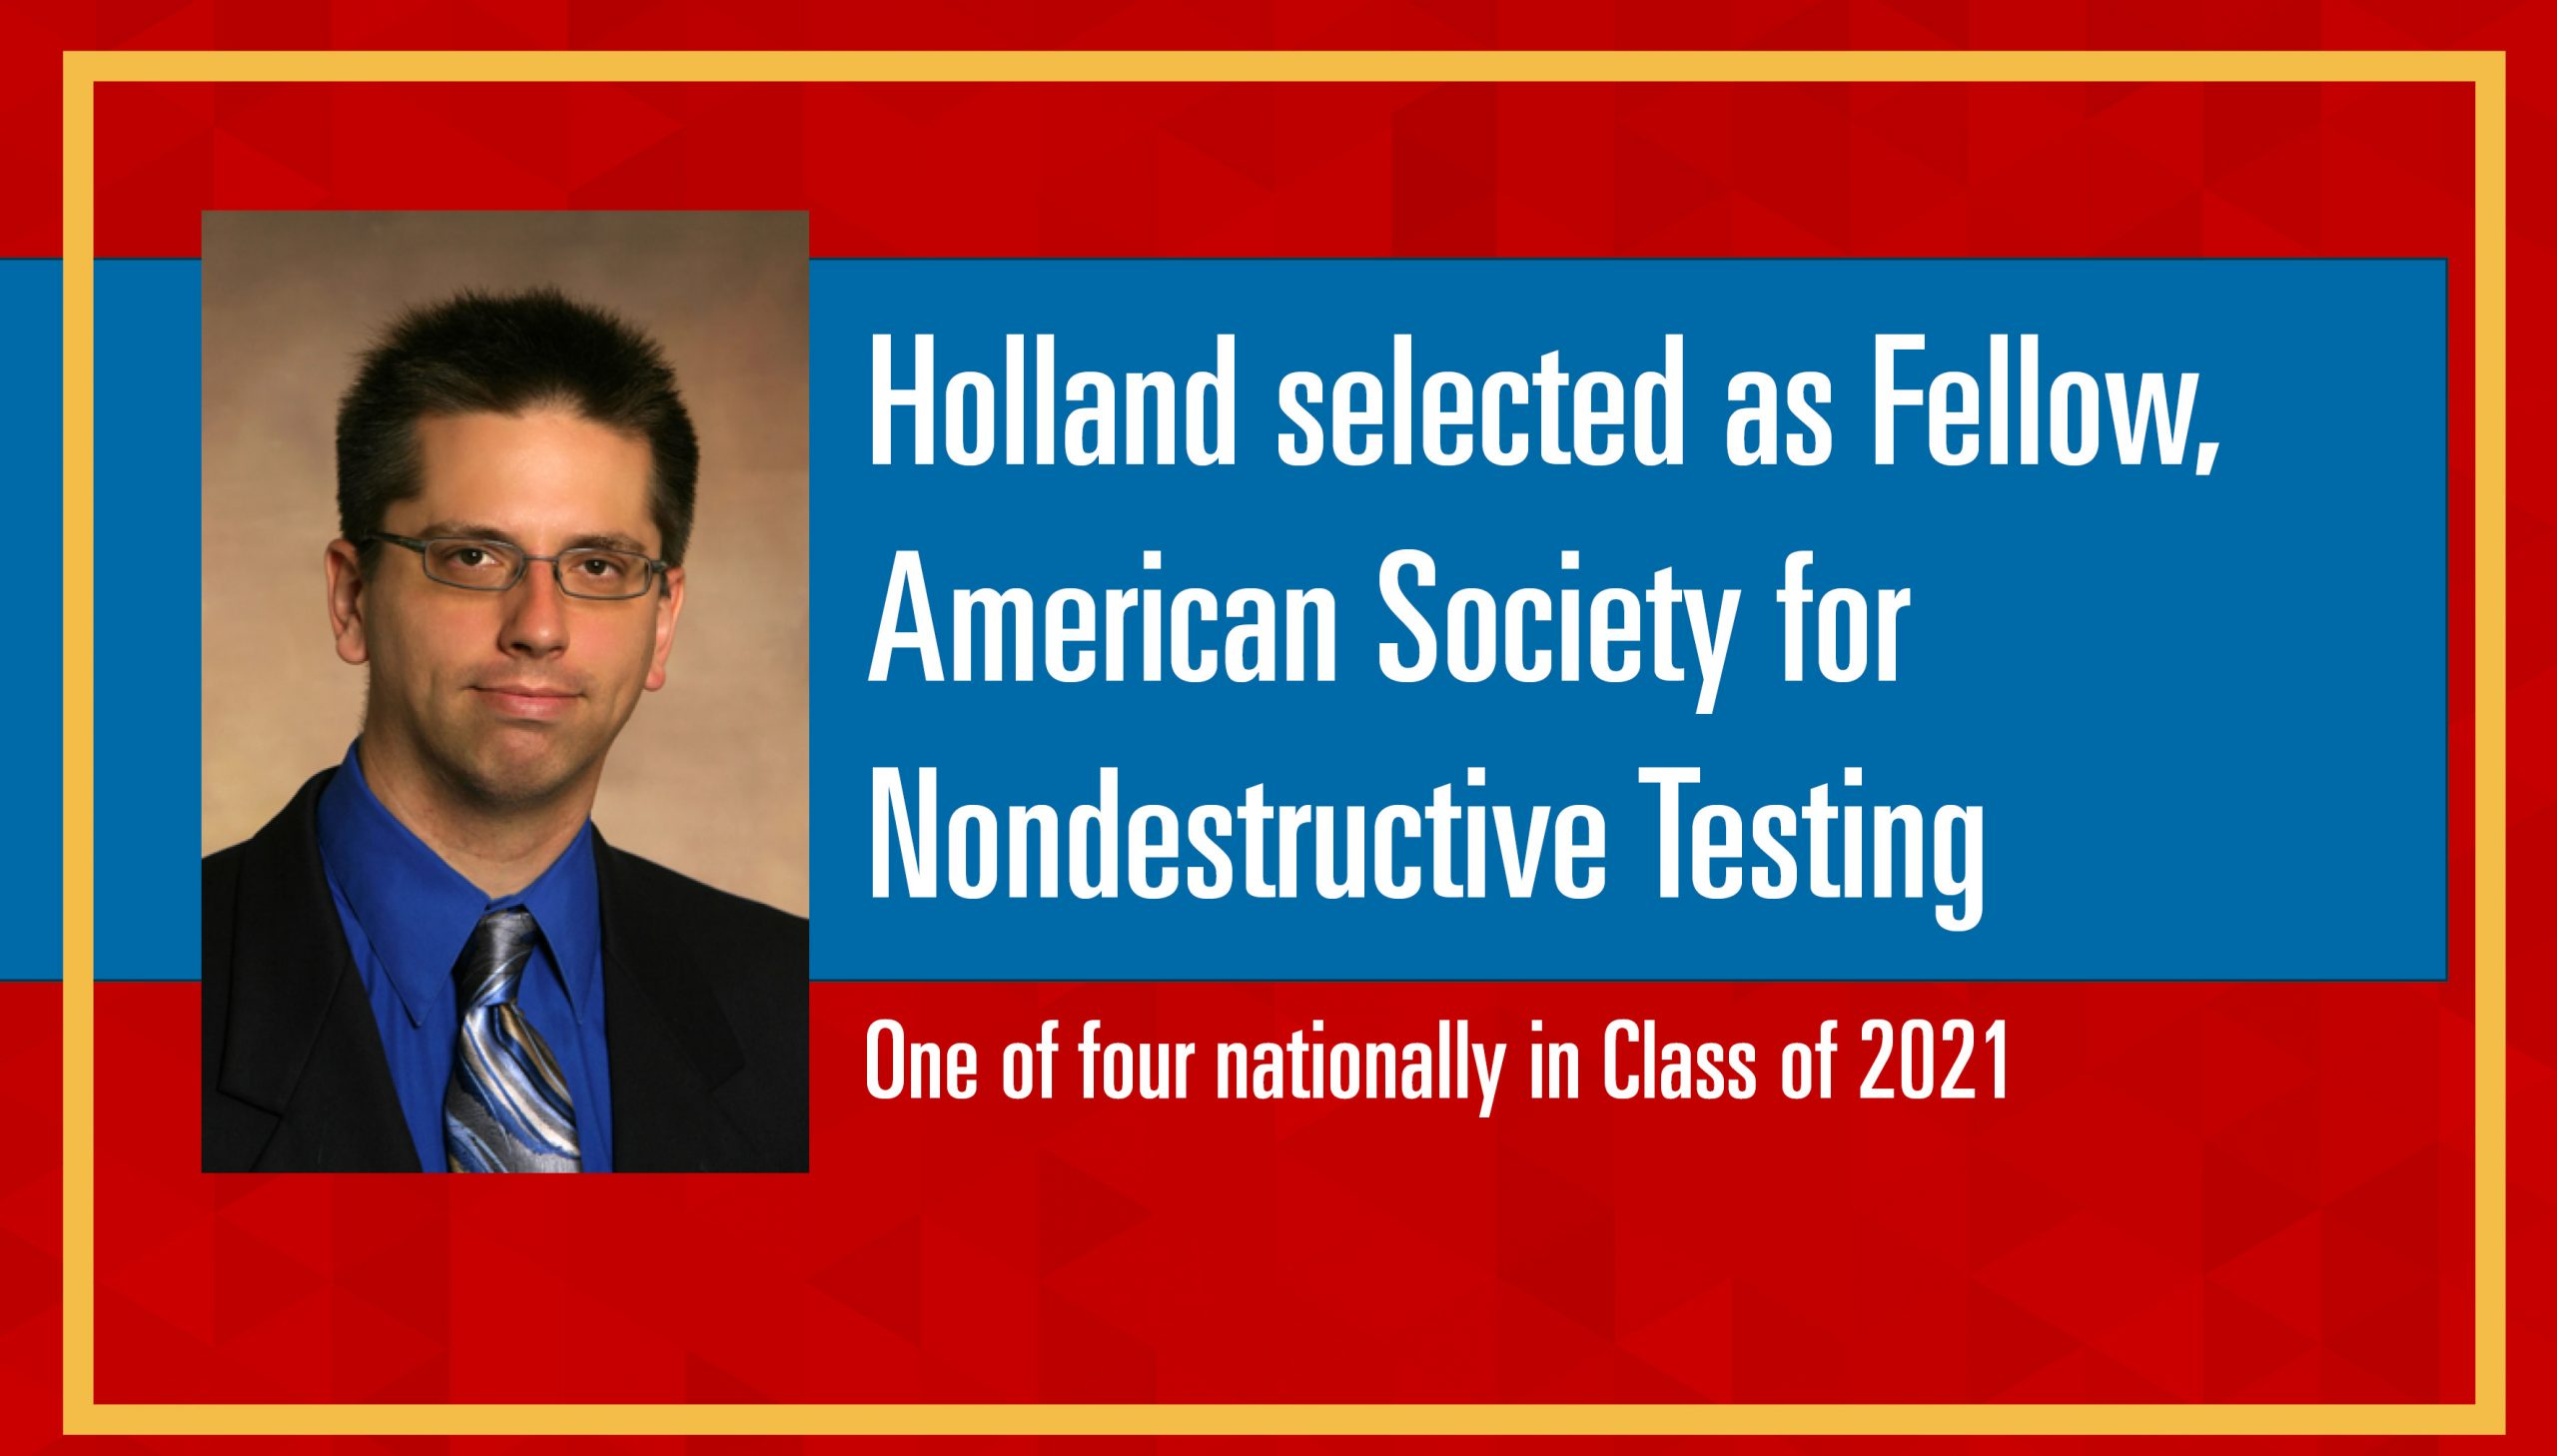 Holland selected as Fellow, American Society for Nondestructive Testing